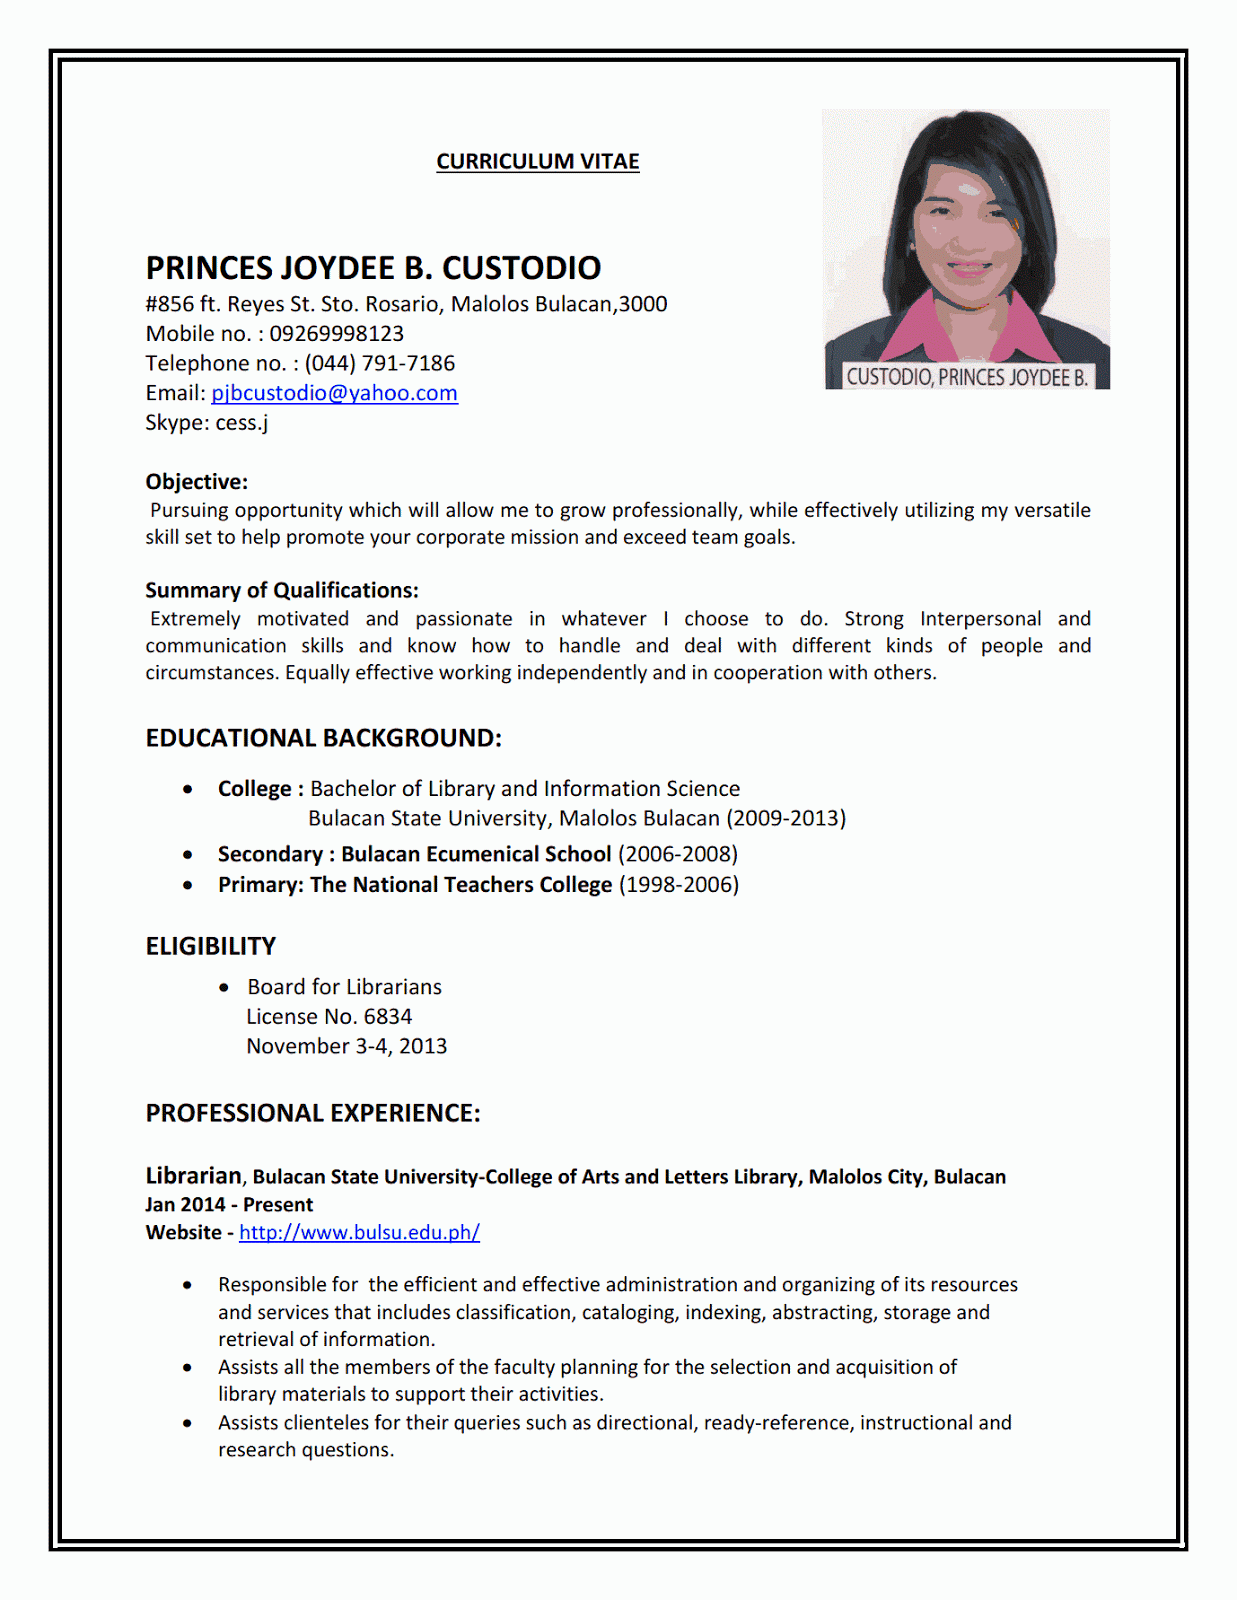 Resume Sample First Job | Sample Resumes | Job resume | Pinterest ...